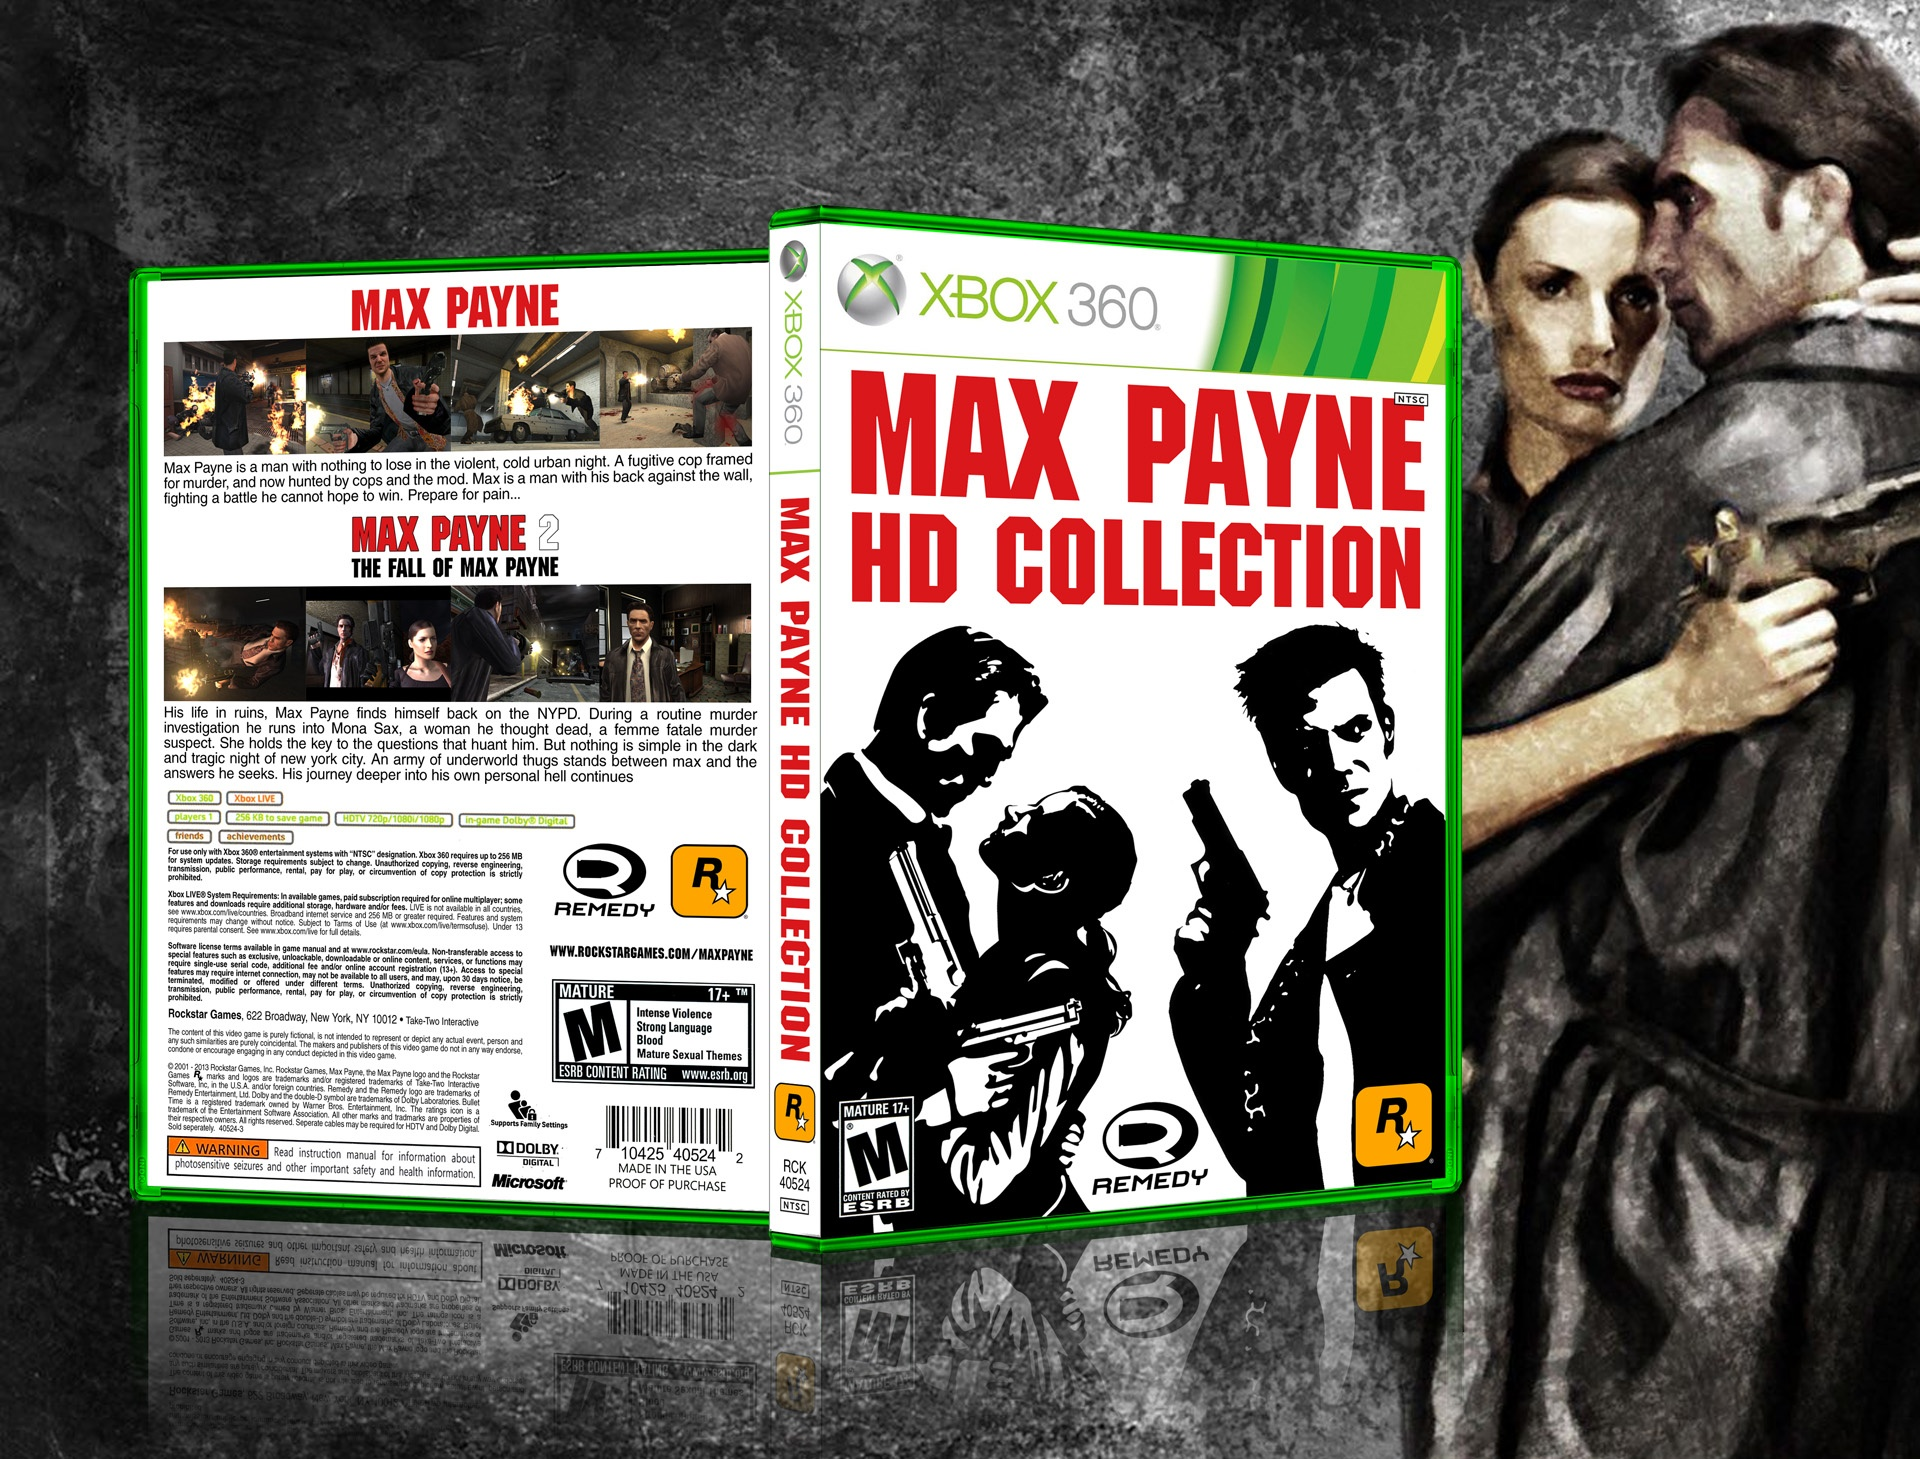 Viewing Full Size Max Payne Hd Collection Box Cover